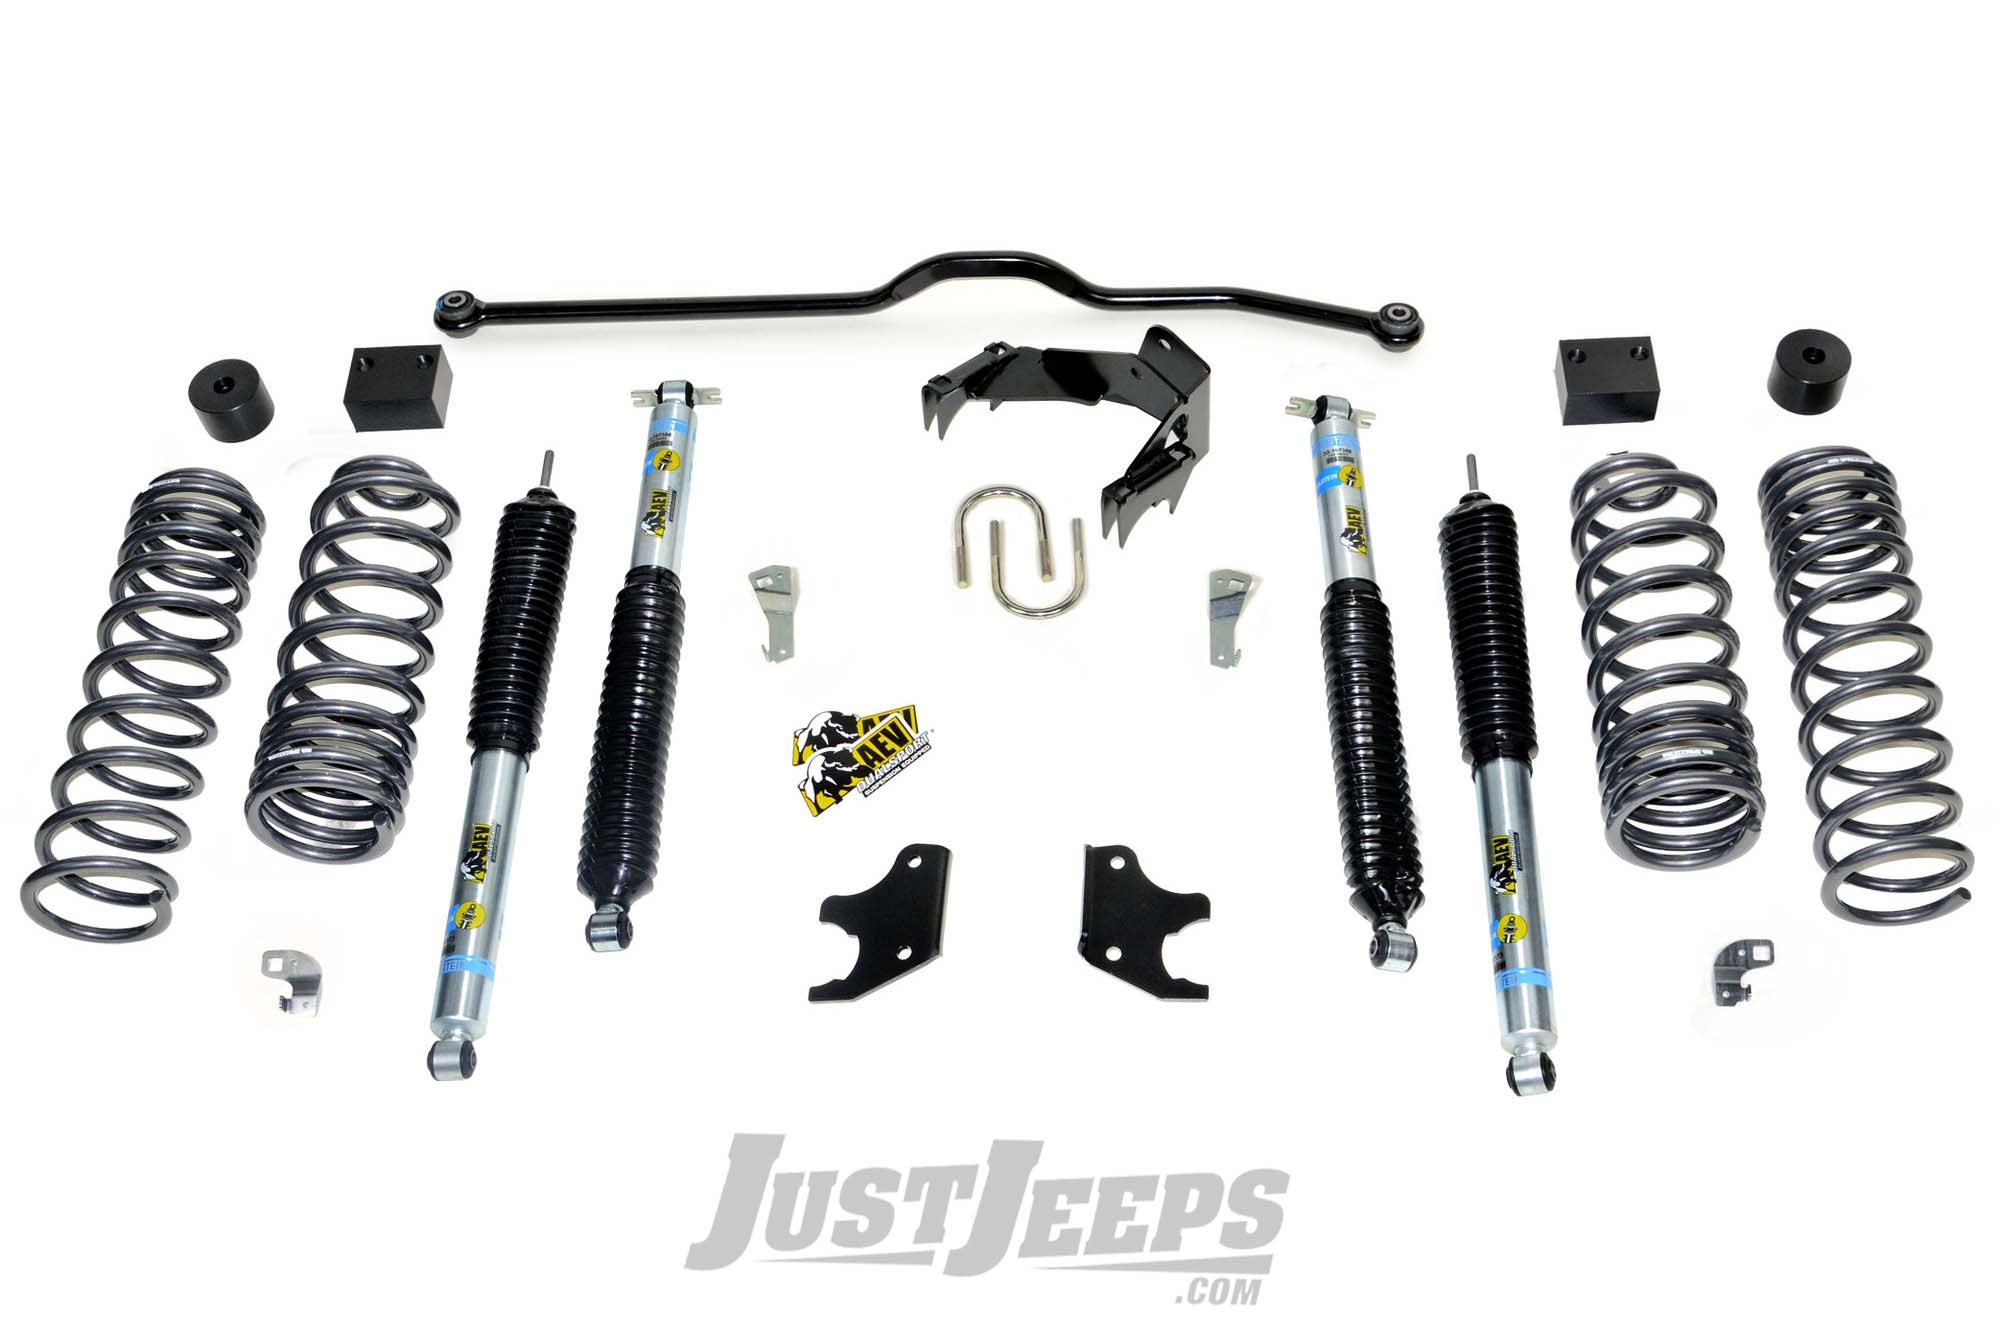 Just Jeeps Aev 2 5 Dualsport Xt Suspension System With Bilstein Shocks For 18 Jeep